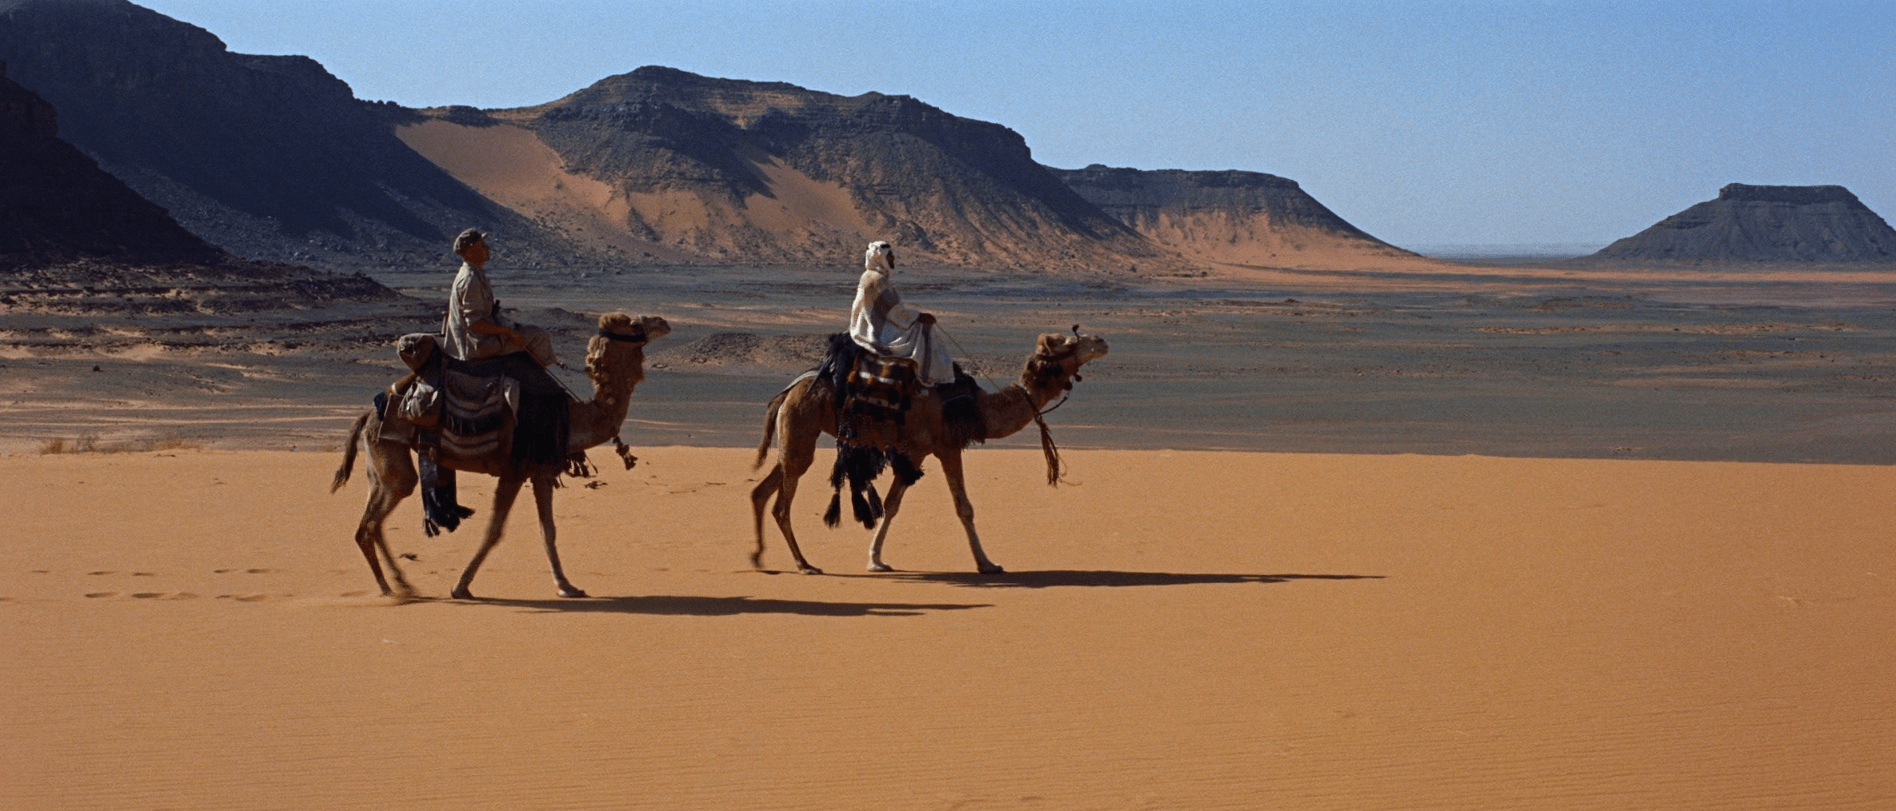 Lawrence Of Arabia Wallpaper and Background Image | 1896x811 | ID ...